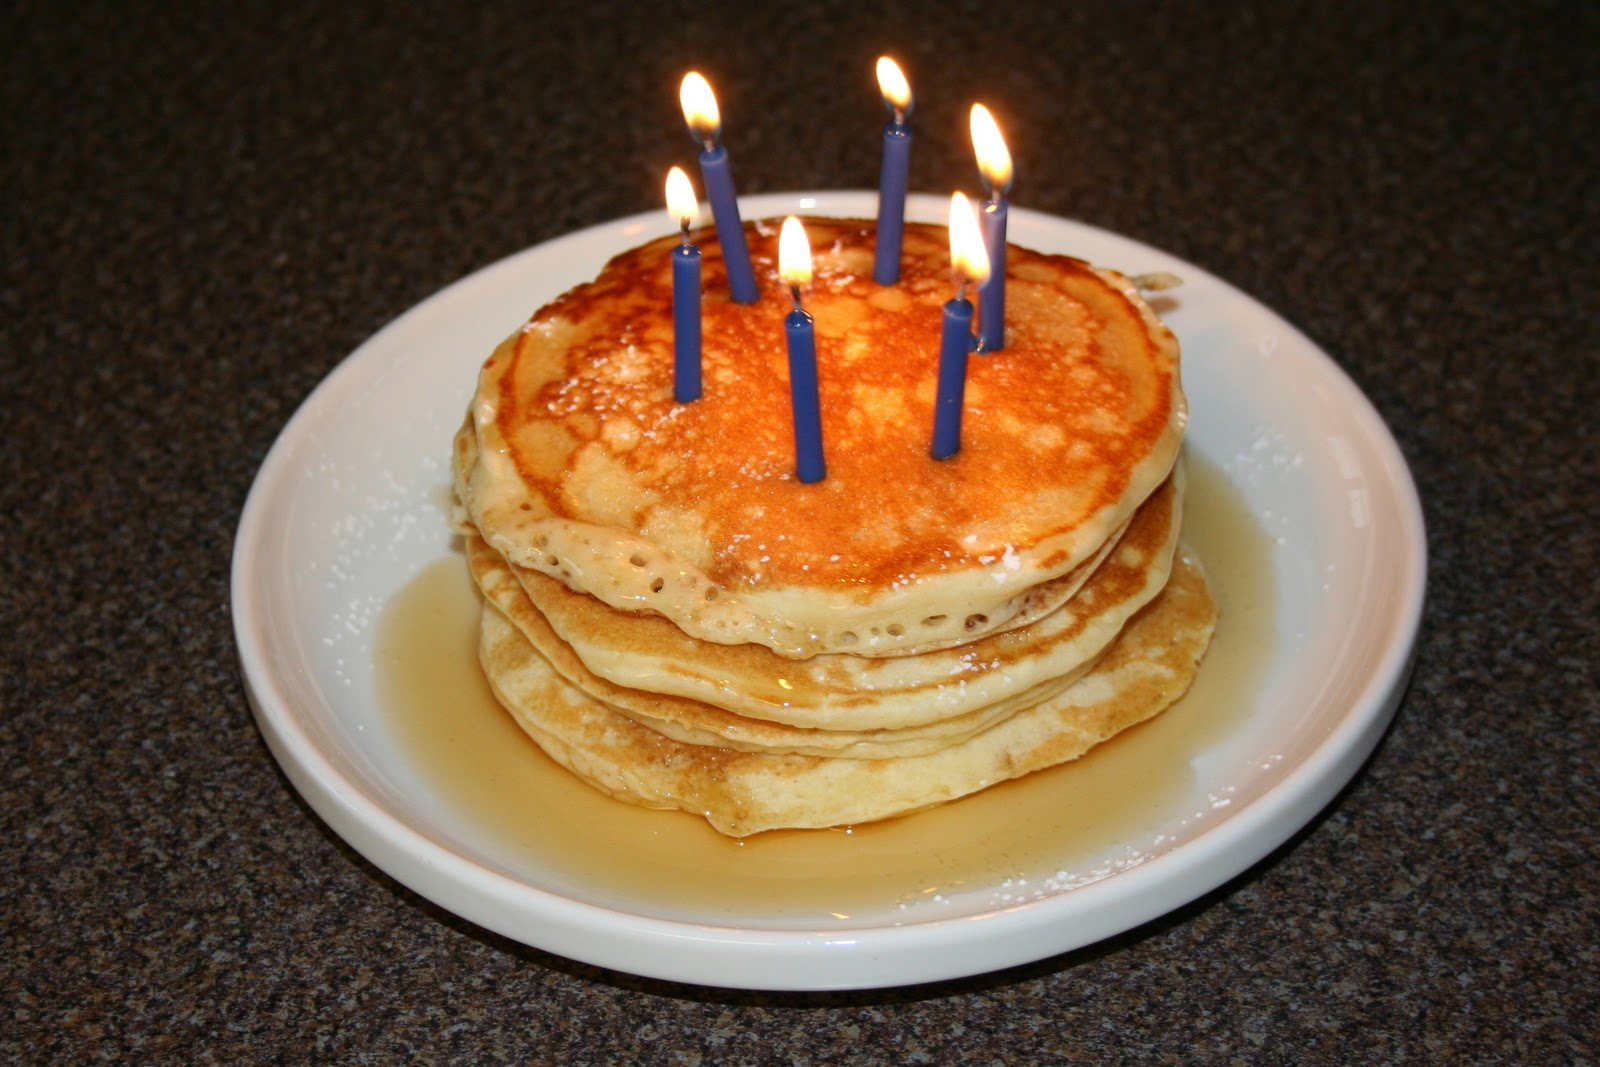 Happy Birthday Marcus Well This Is His Breakfast He A Lover Of Pancakes And I Cannot Resist But To Give Him What Wants On Special